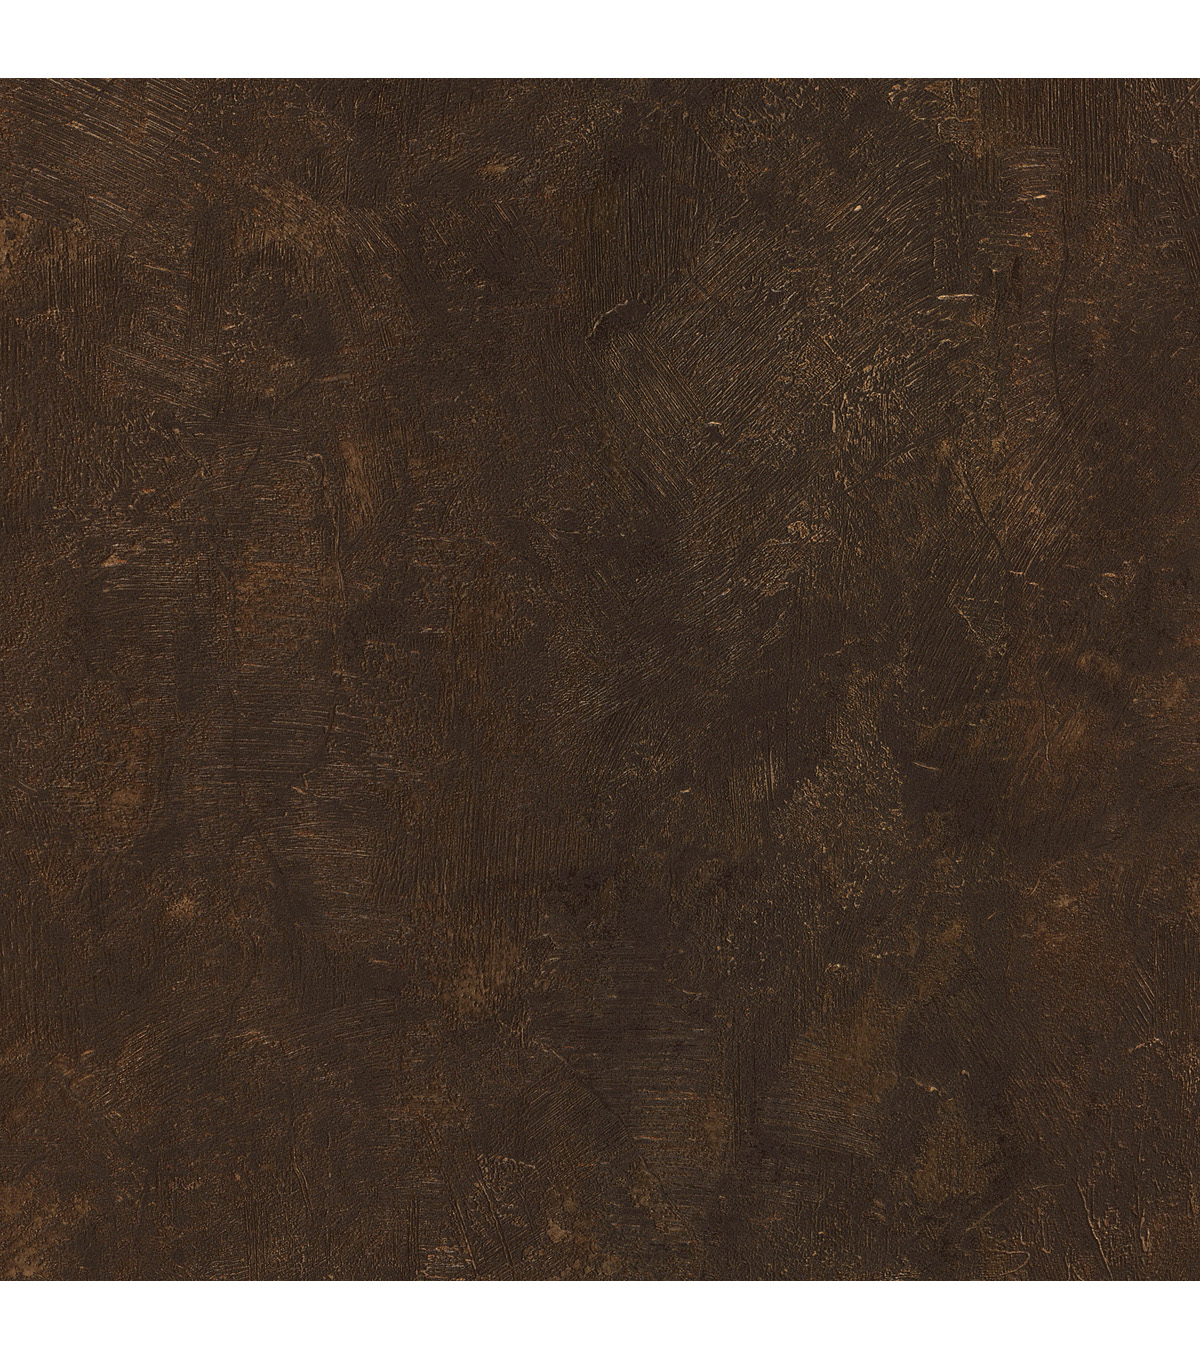 Davio Dark Brown Heavy Plaster Wallpaper